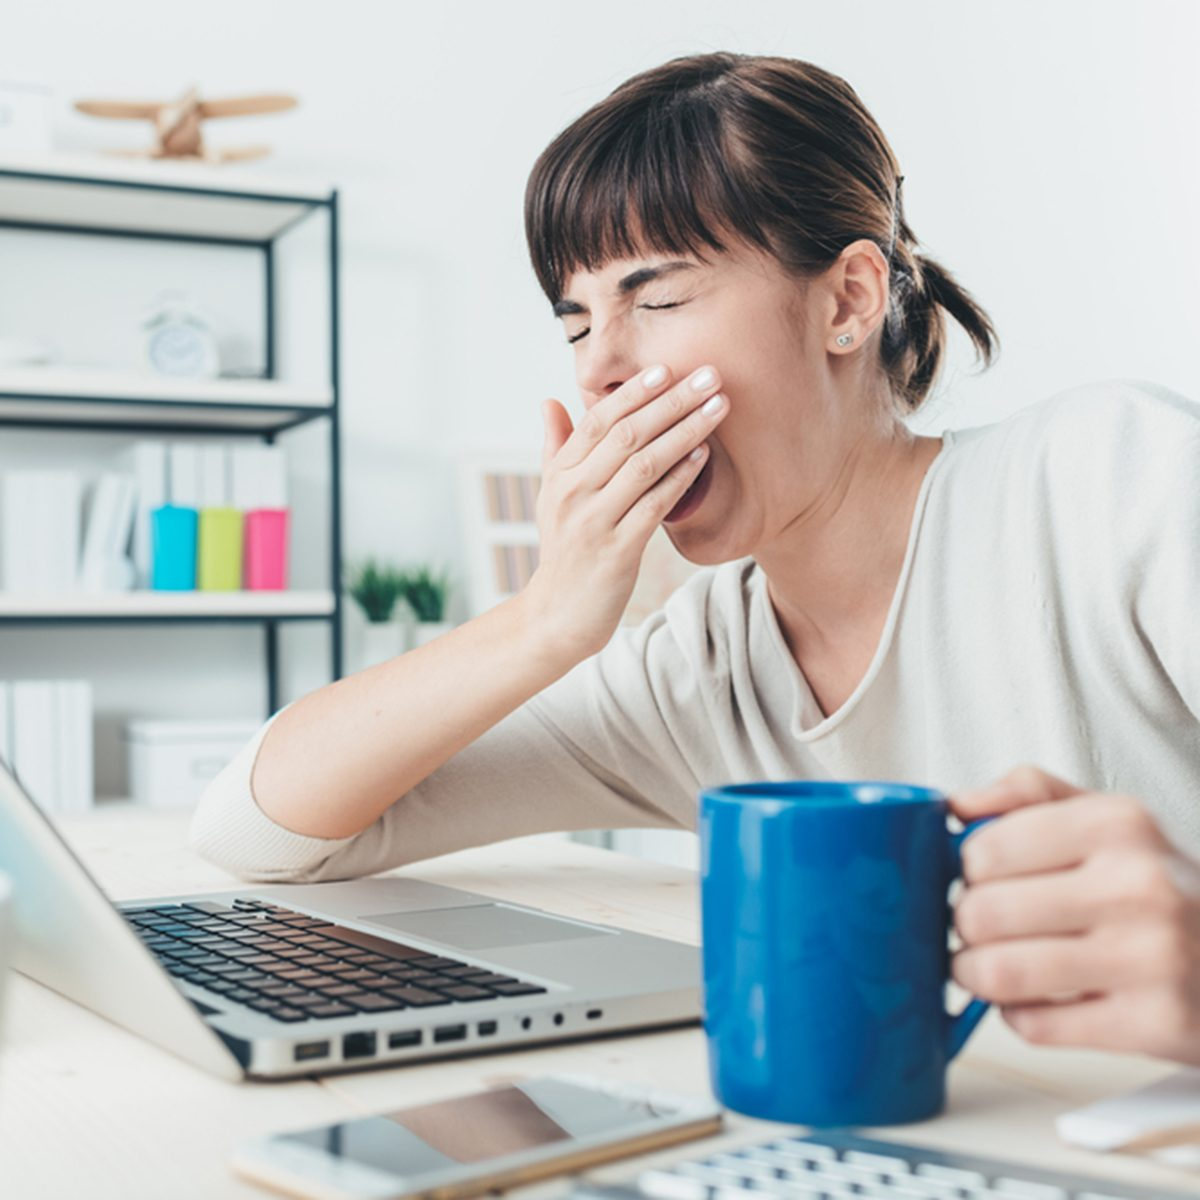 Tired sleepy woman yawning, working at office desk and holding a cup of coffee, overwork and sleep deprivation concept; Shutterstock ID 367741853